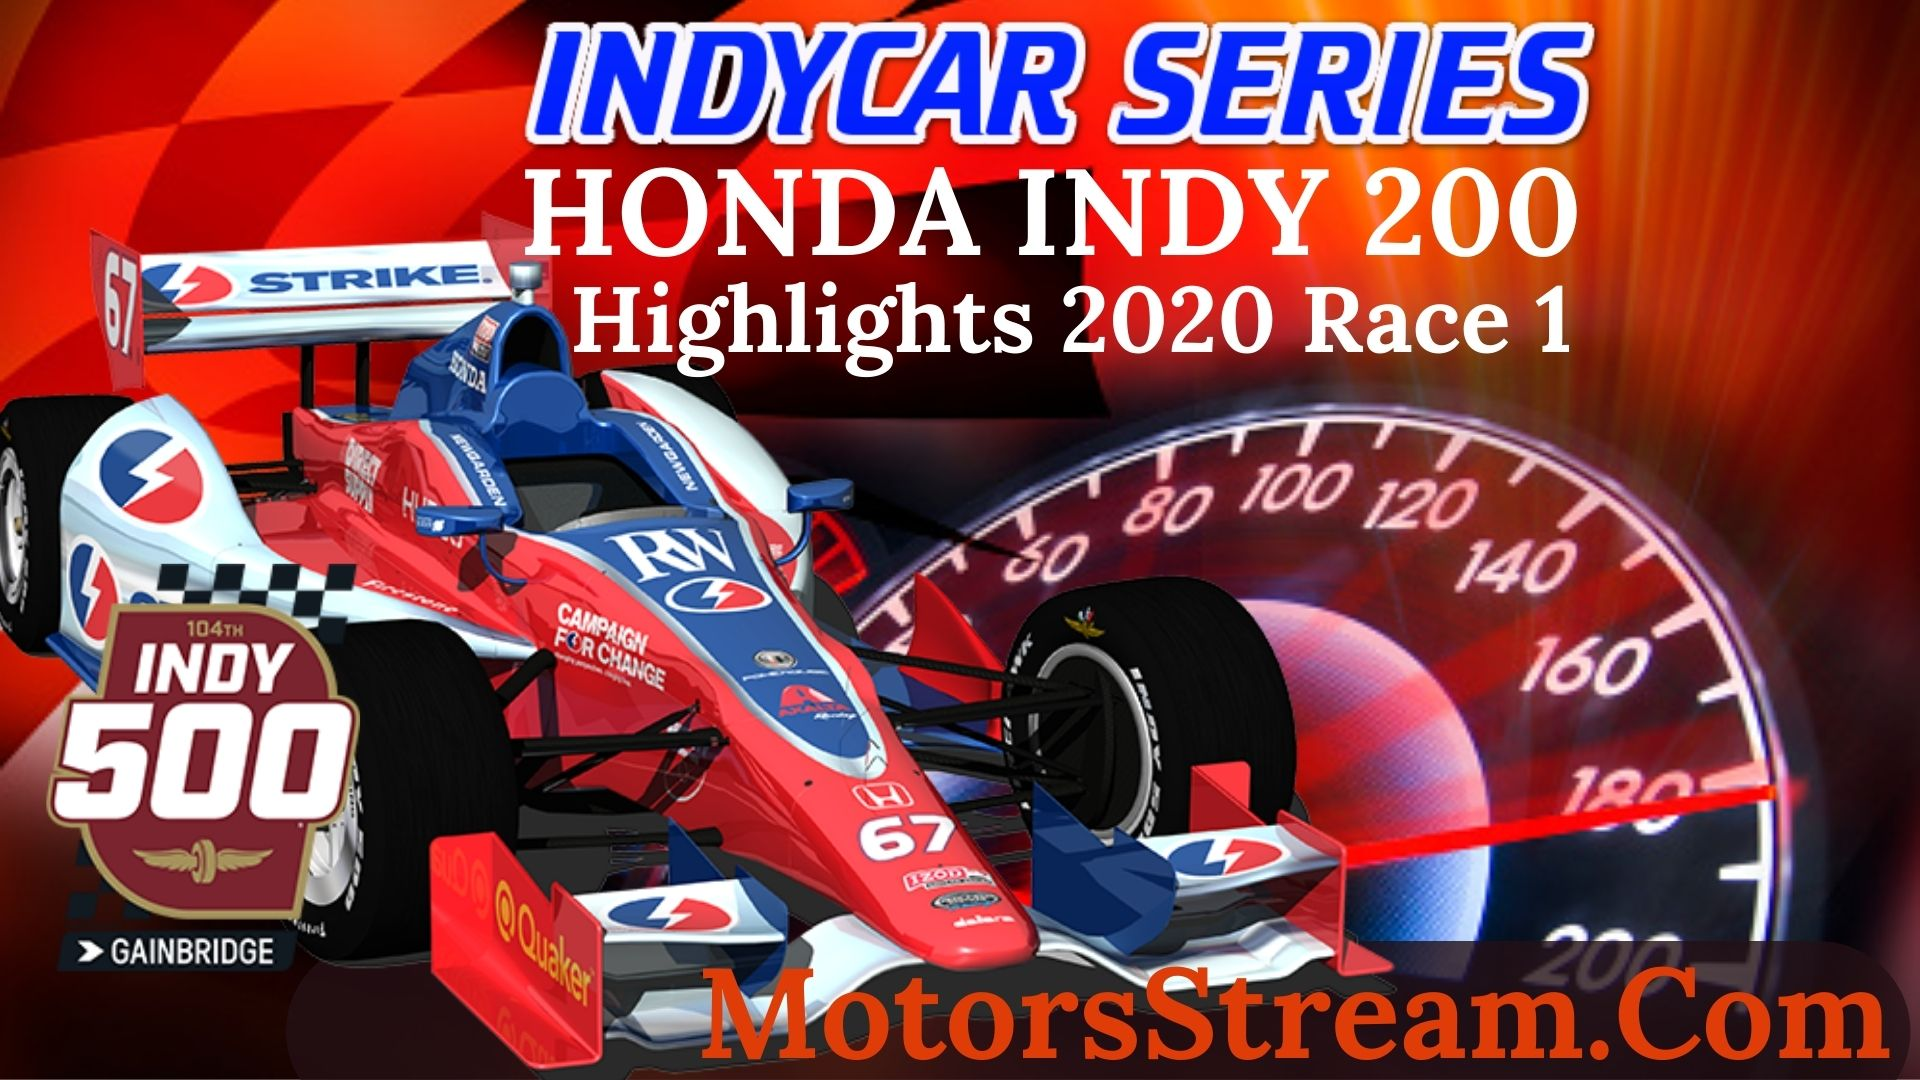 Honda Indy 200 Race 1 Highlight 2020 INDYCAR